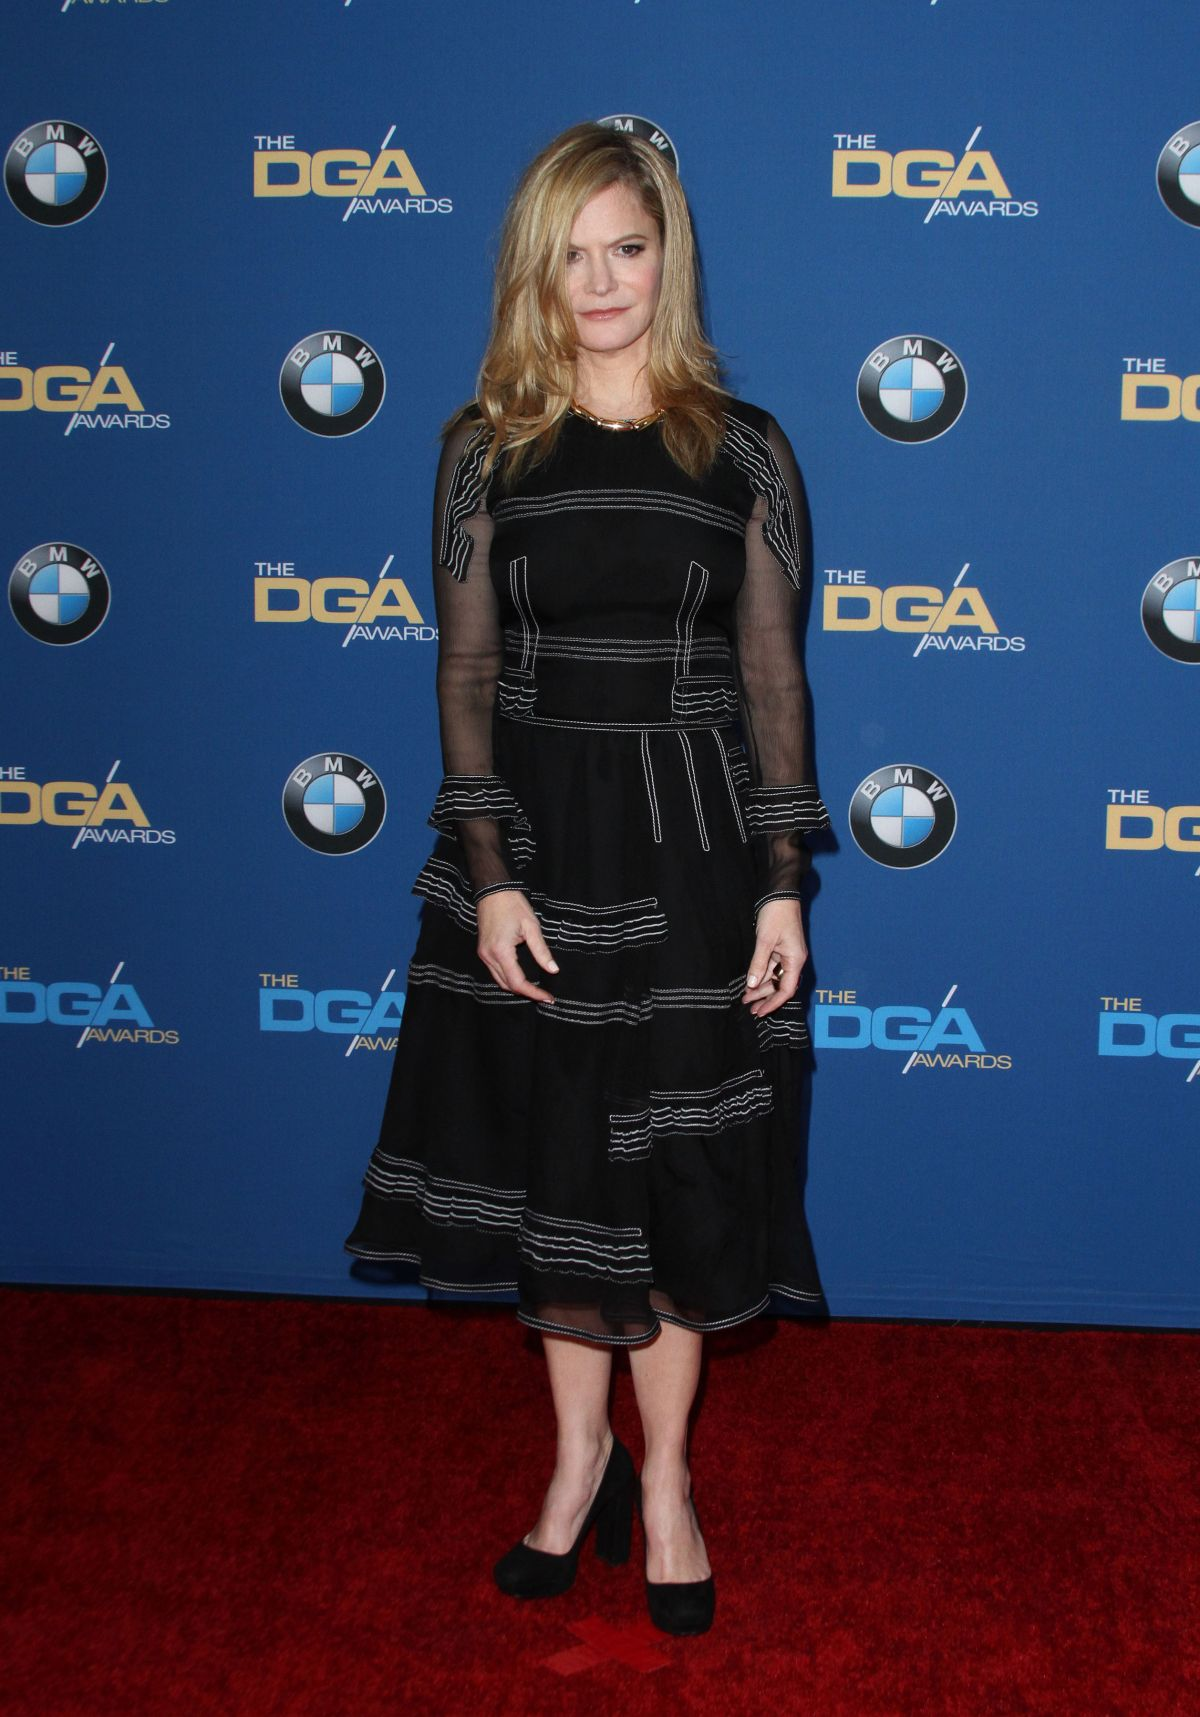 JENNIFER JASON LEIGH at 68th Annual Directors Guild of America Awards in Los Angeles 02/06/2016